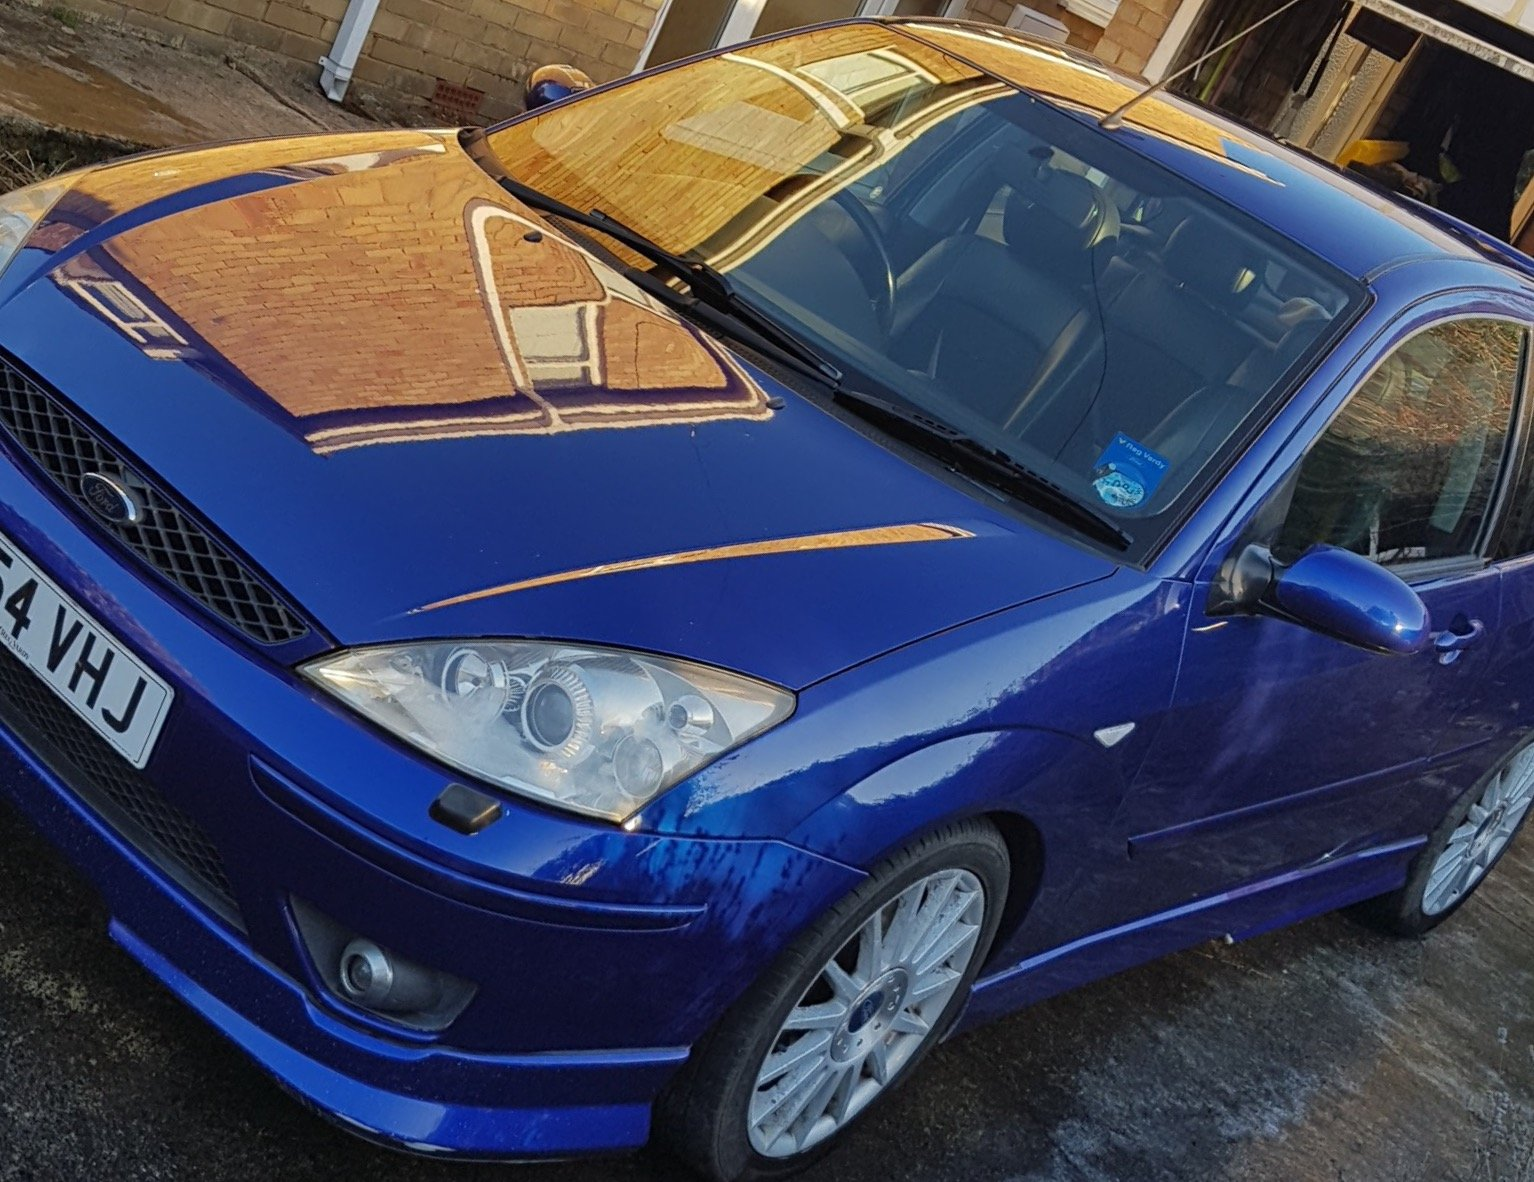 2004 Ford Focus Mk1  ST170 3dr hot hatch  For Sale (picture 4 of 5)